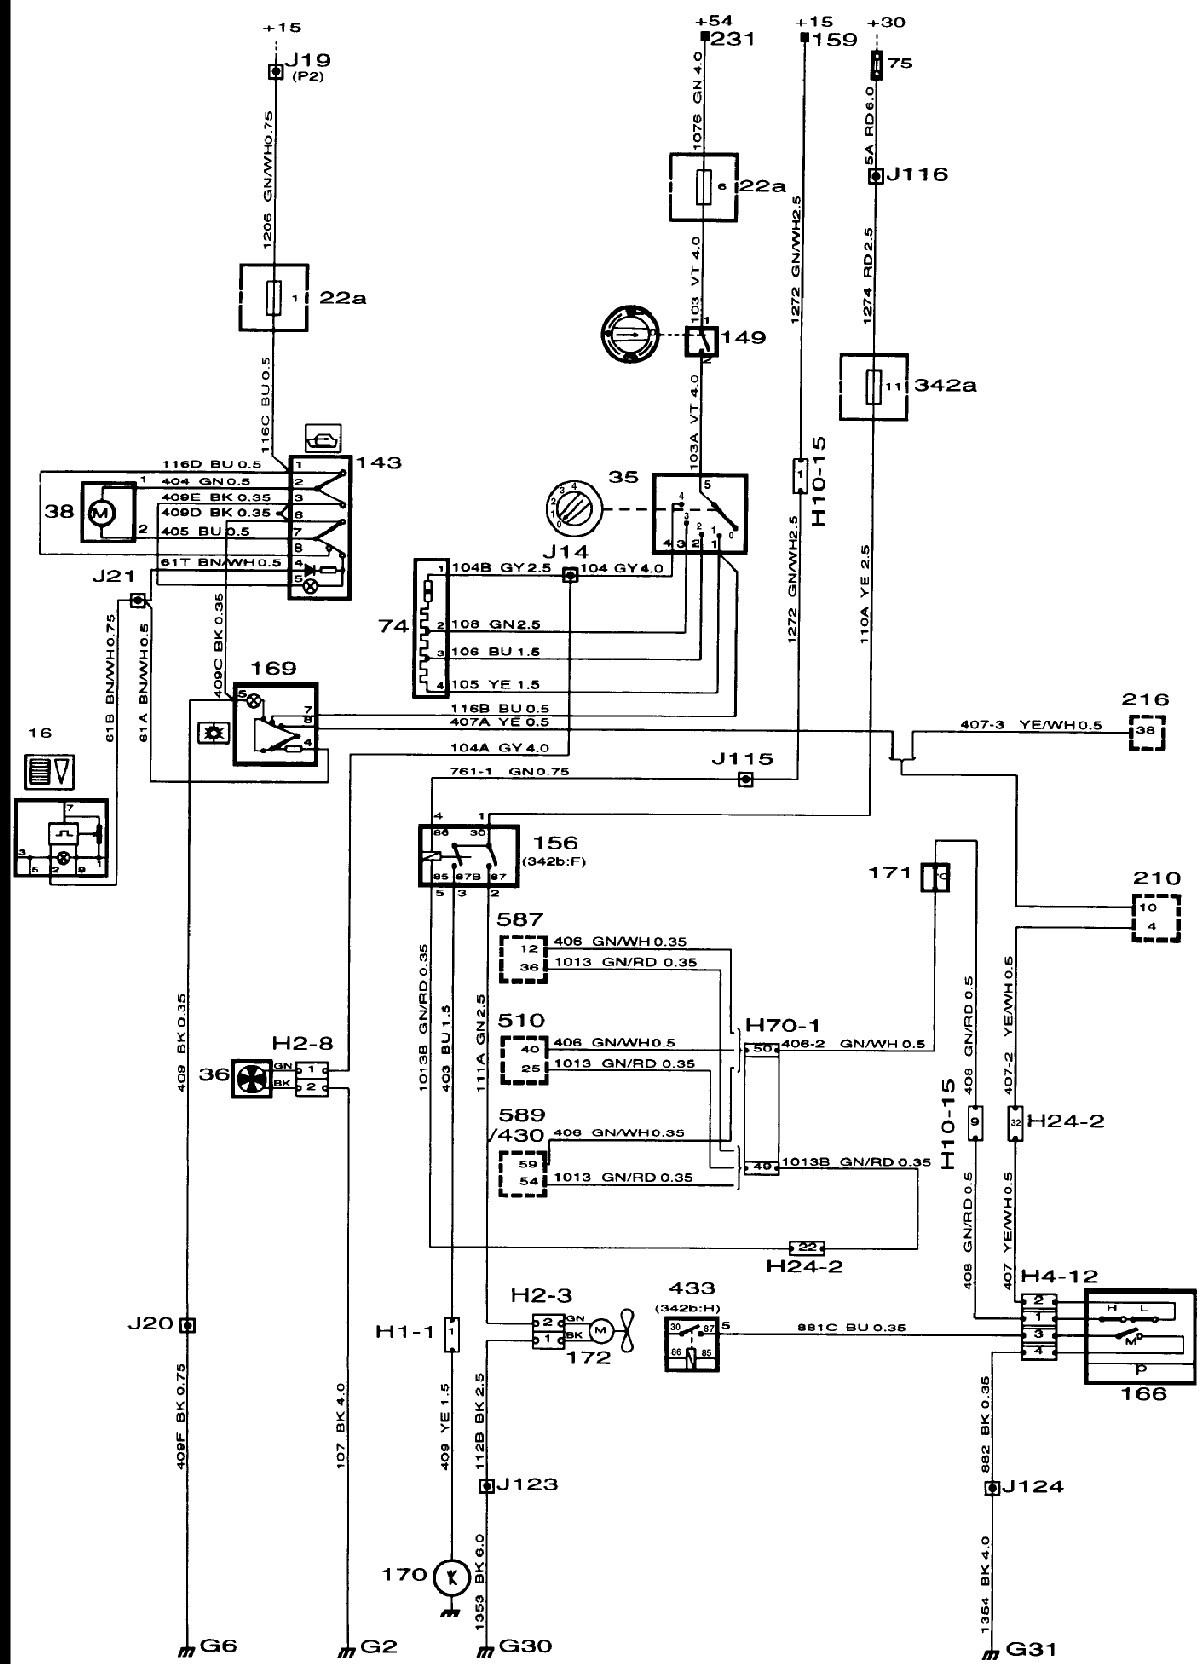 Passtime Gps Wiring Diagram For Your Needs